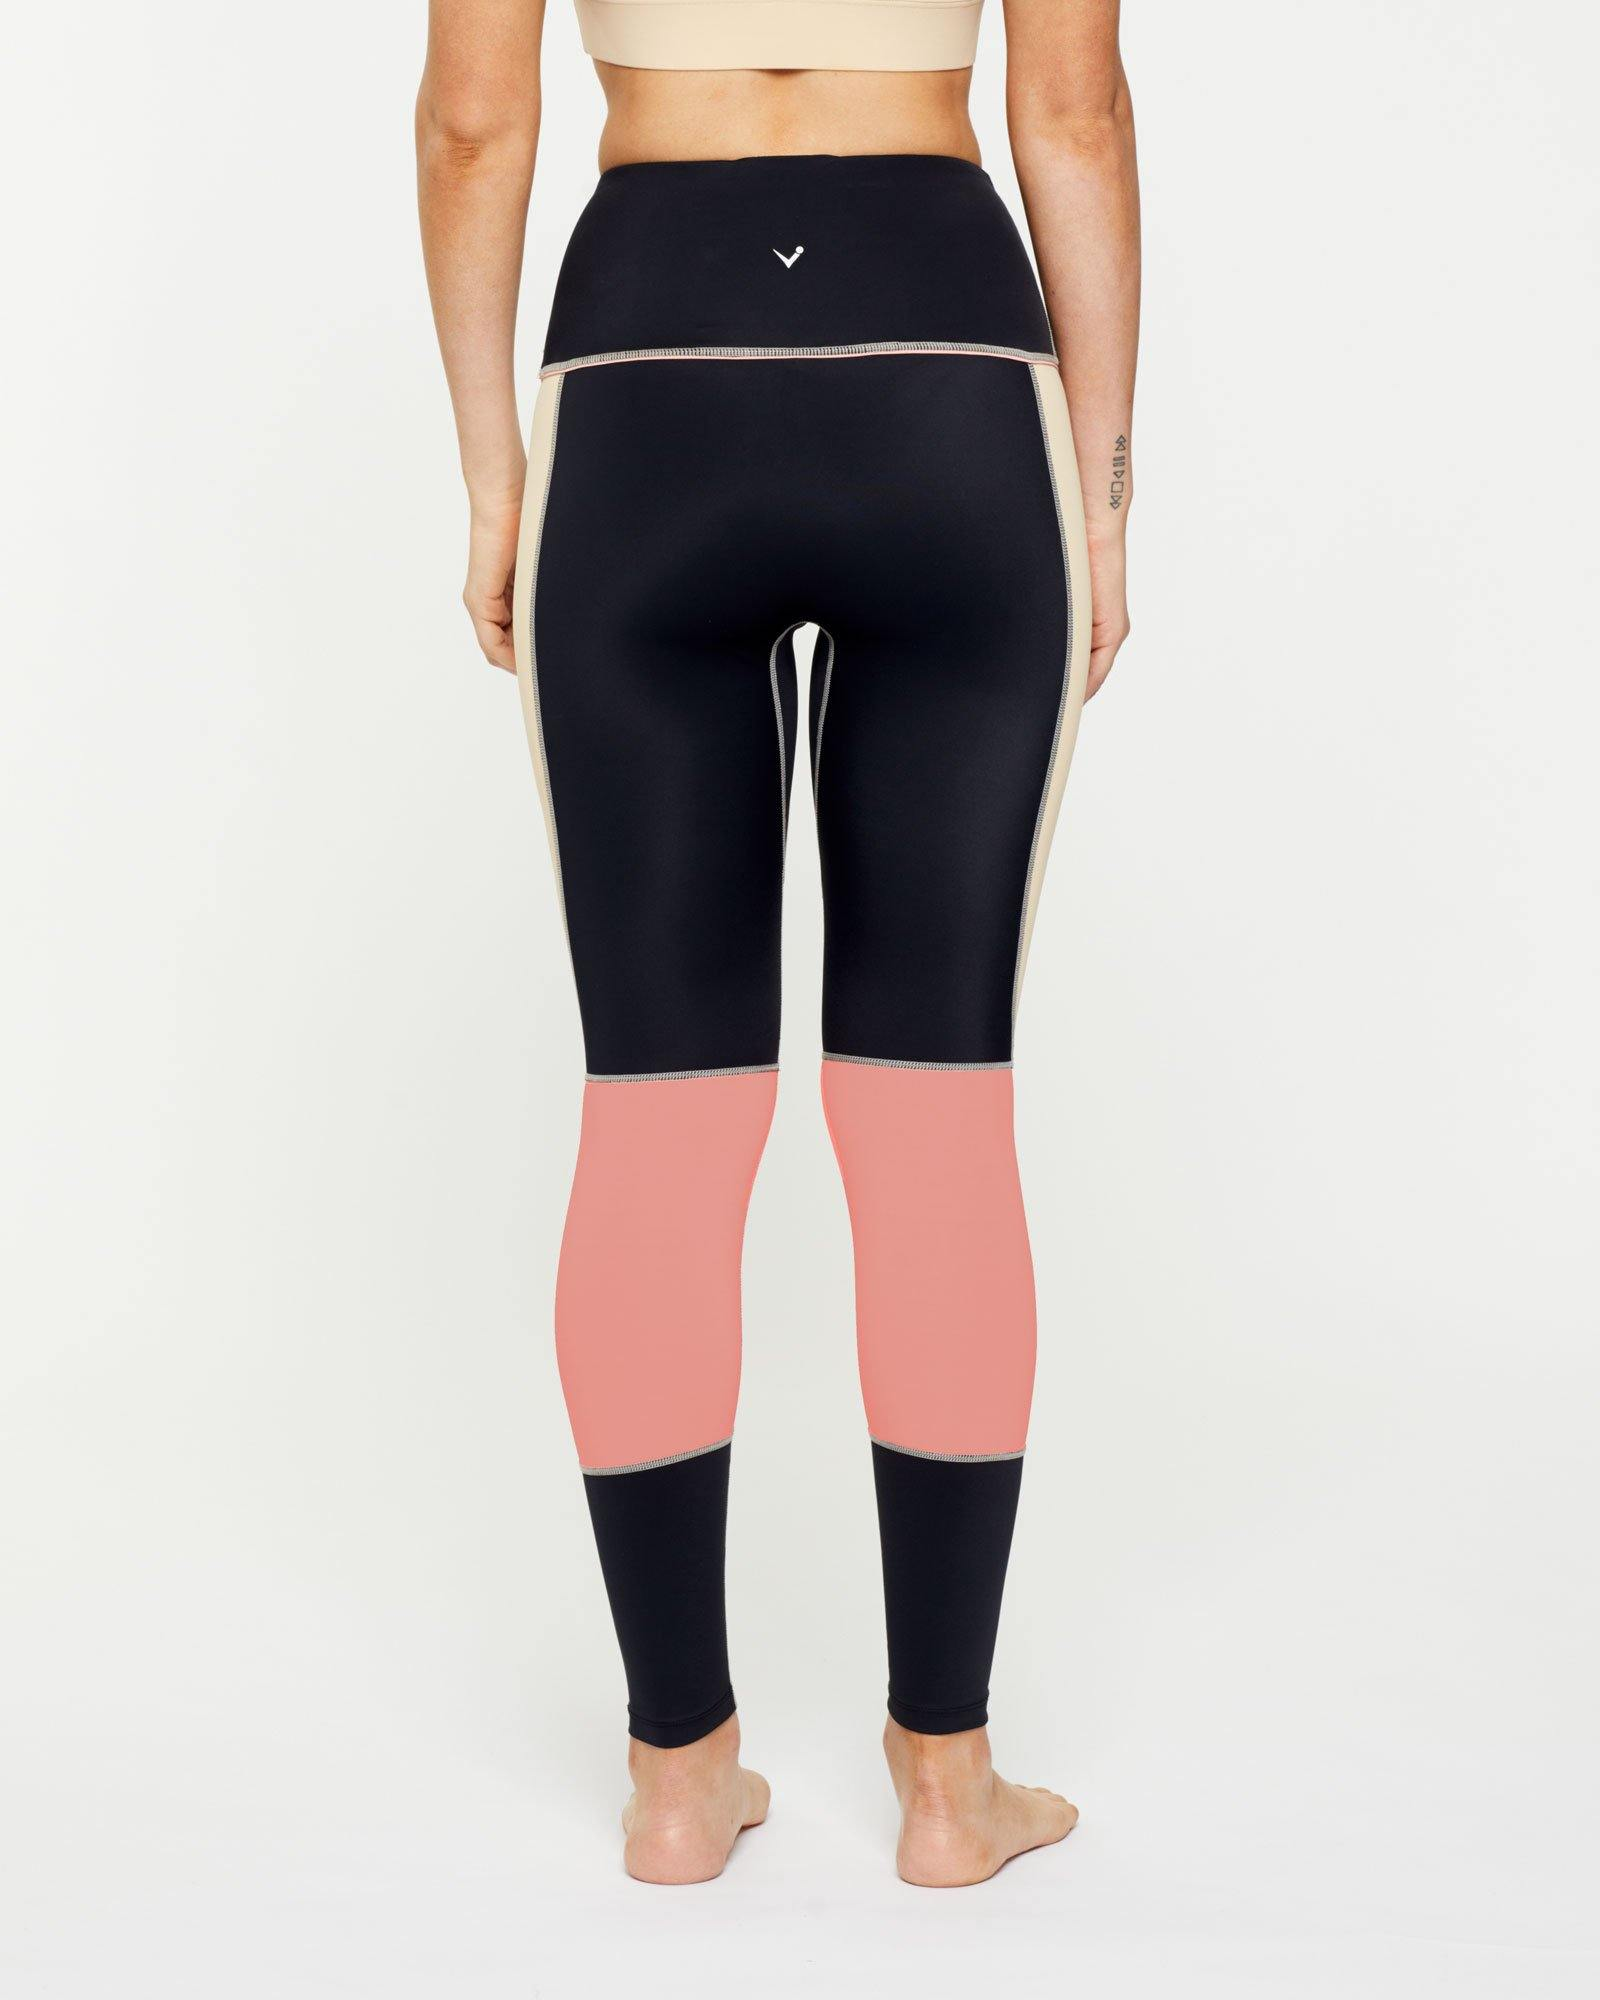 Warrior GRACILIS 7/8 high waisted LEGGING BLACK WITH CONTRAST PANELS, BACK VIEW